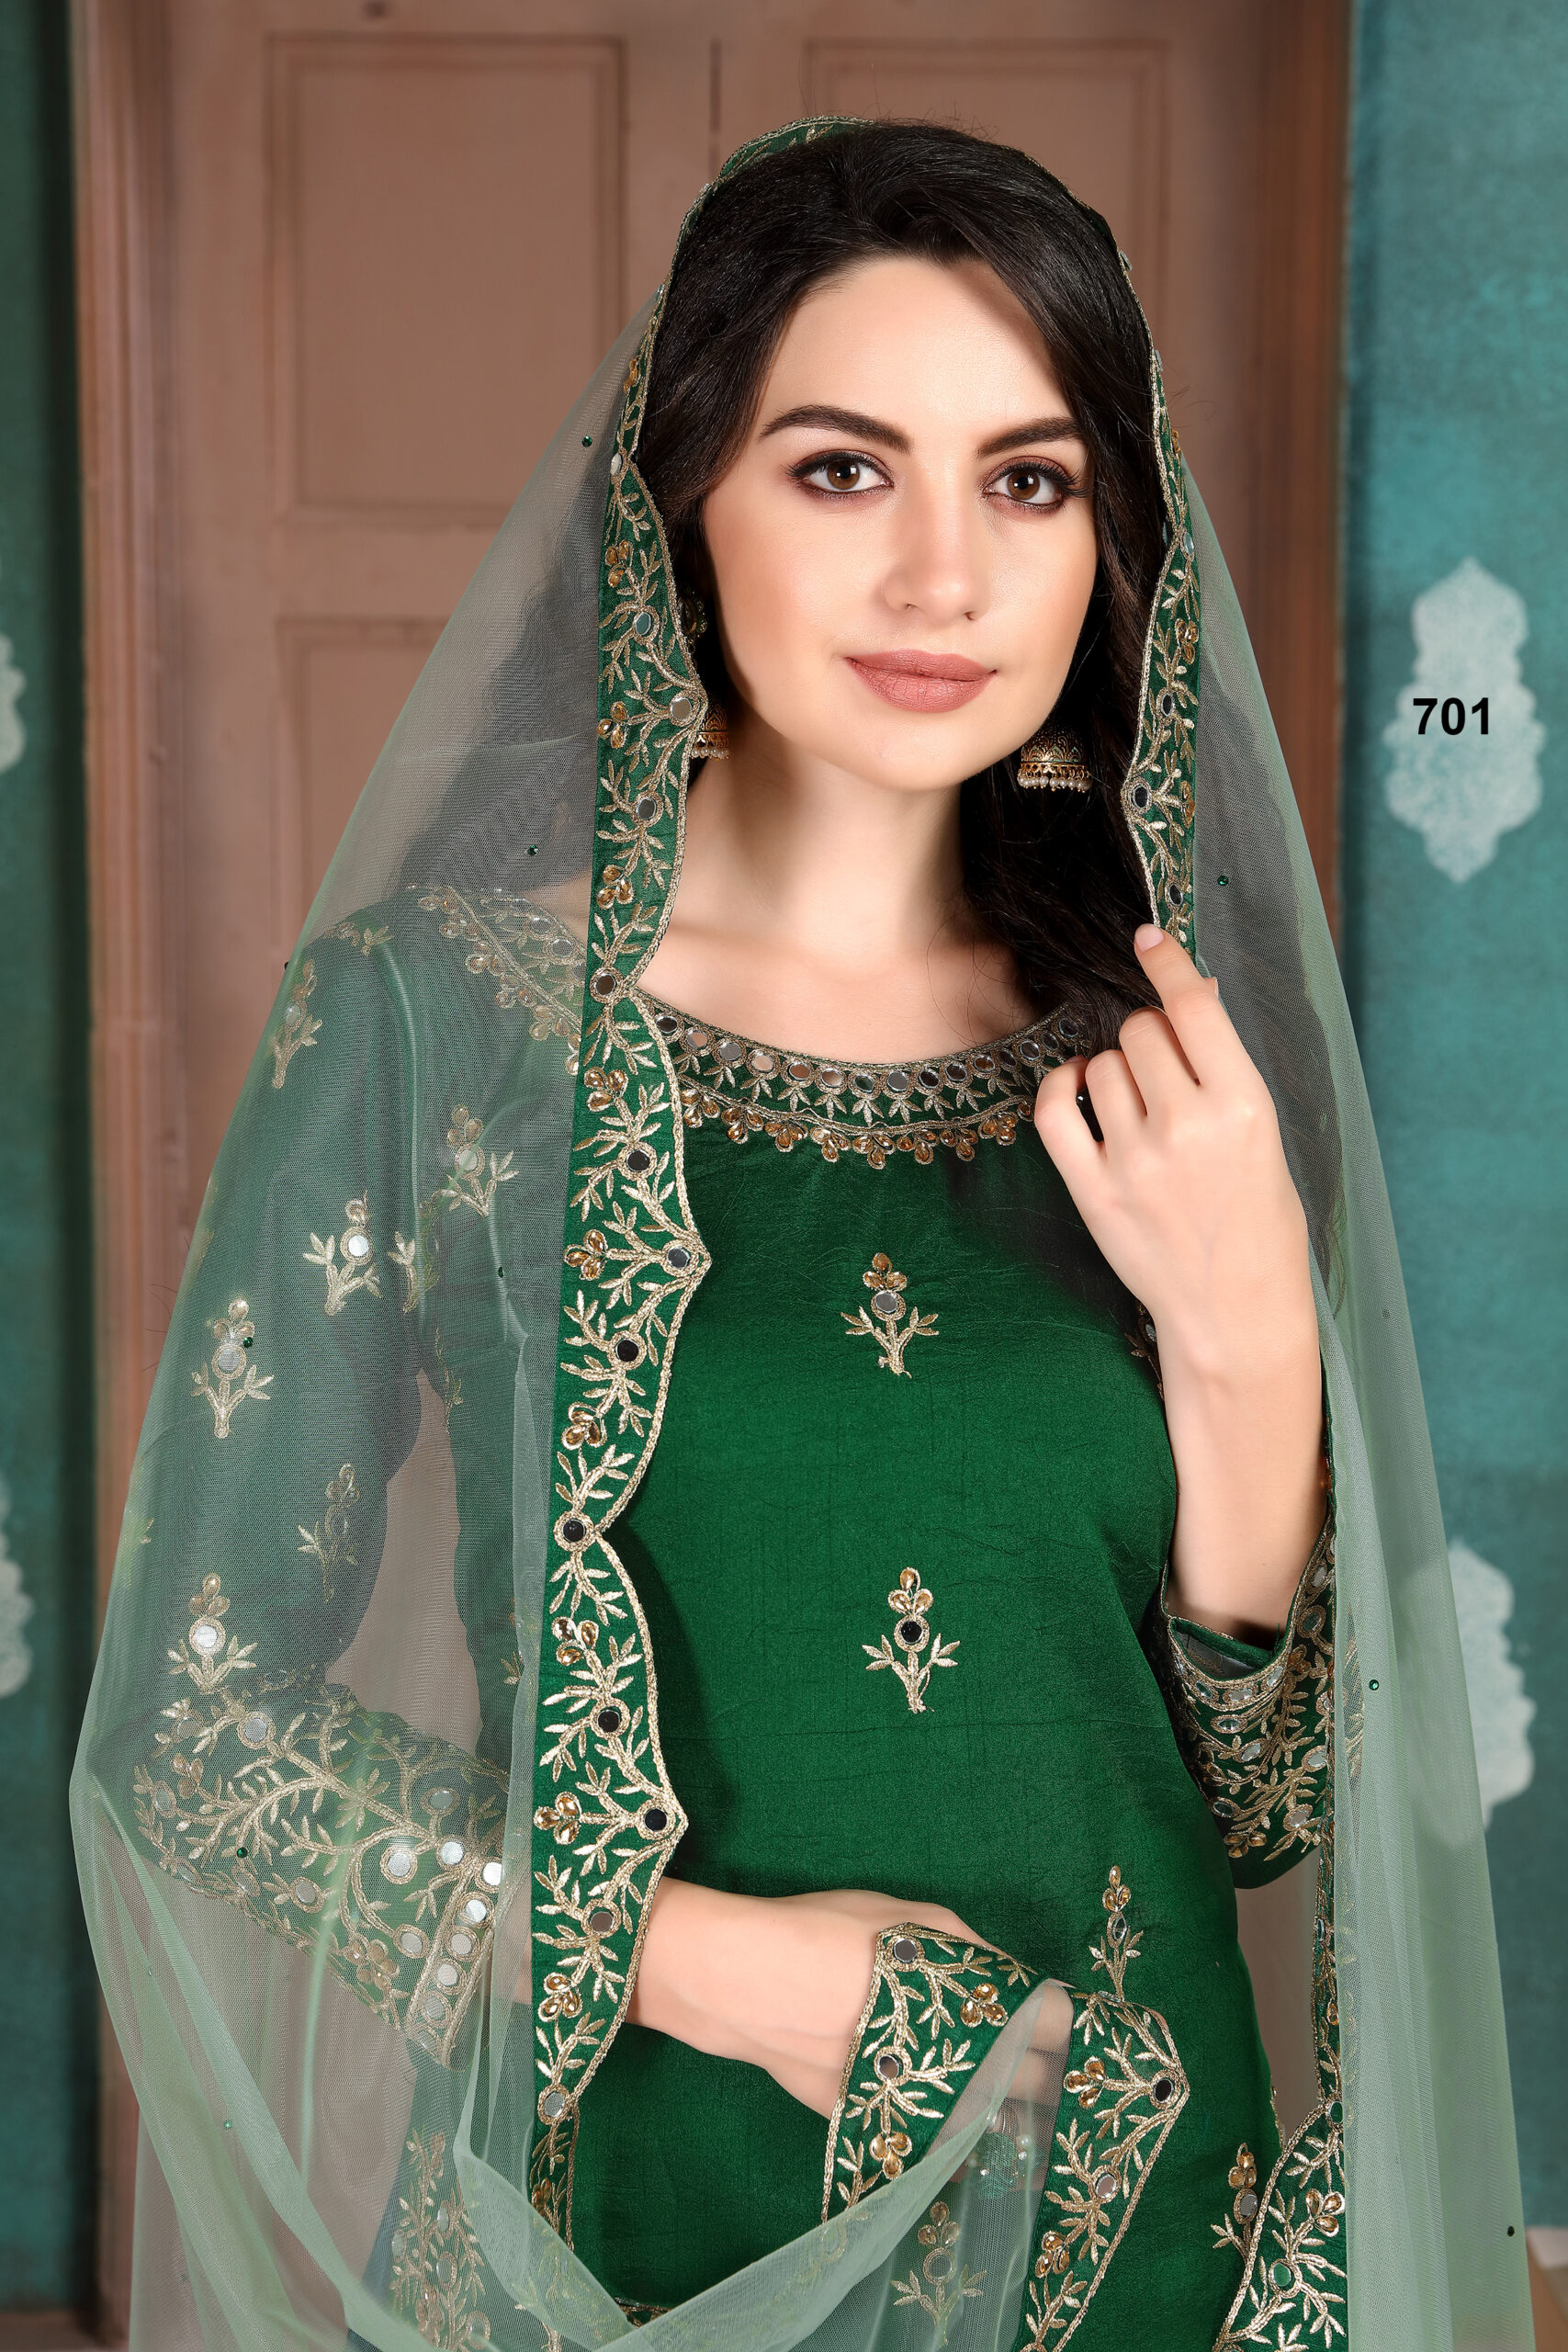 Green Suits for Woman Wedding